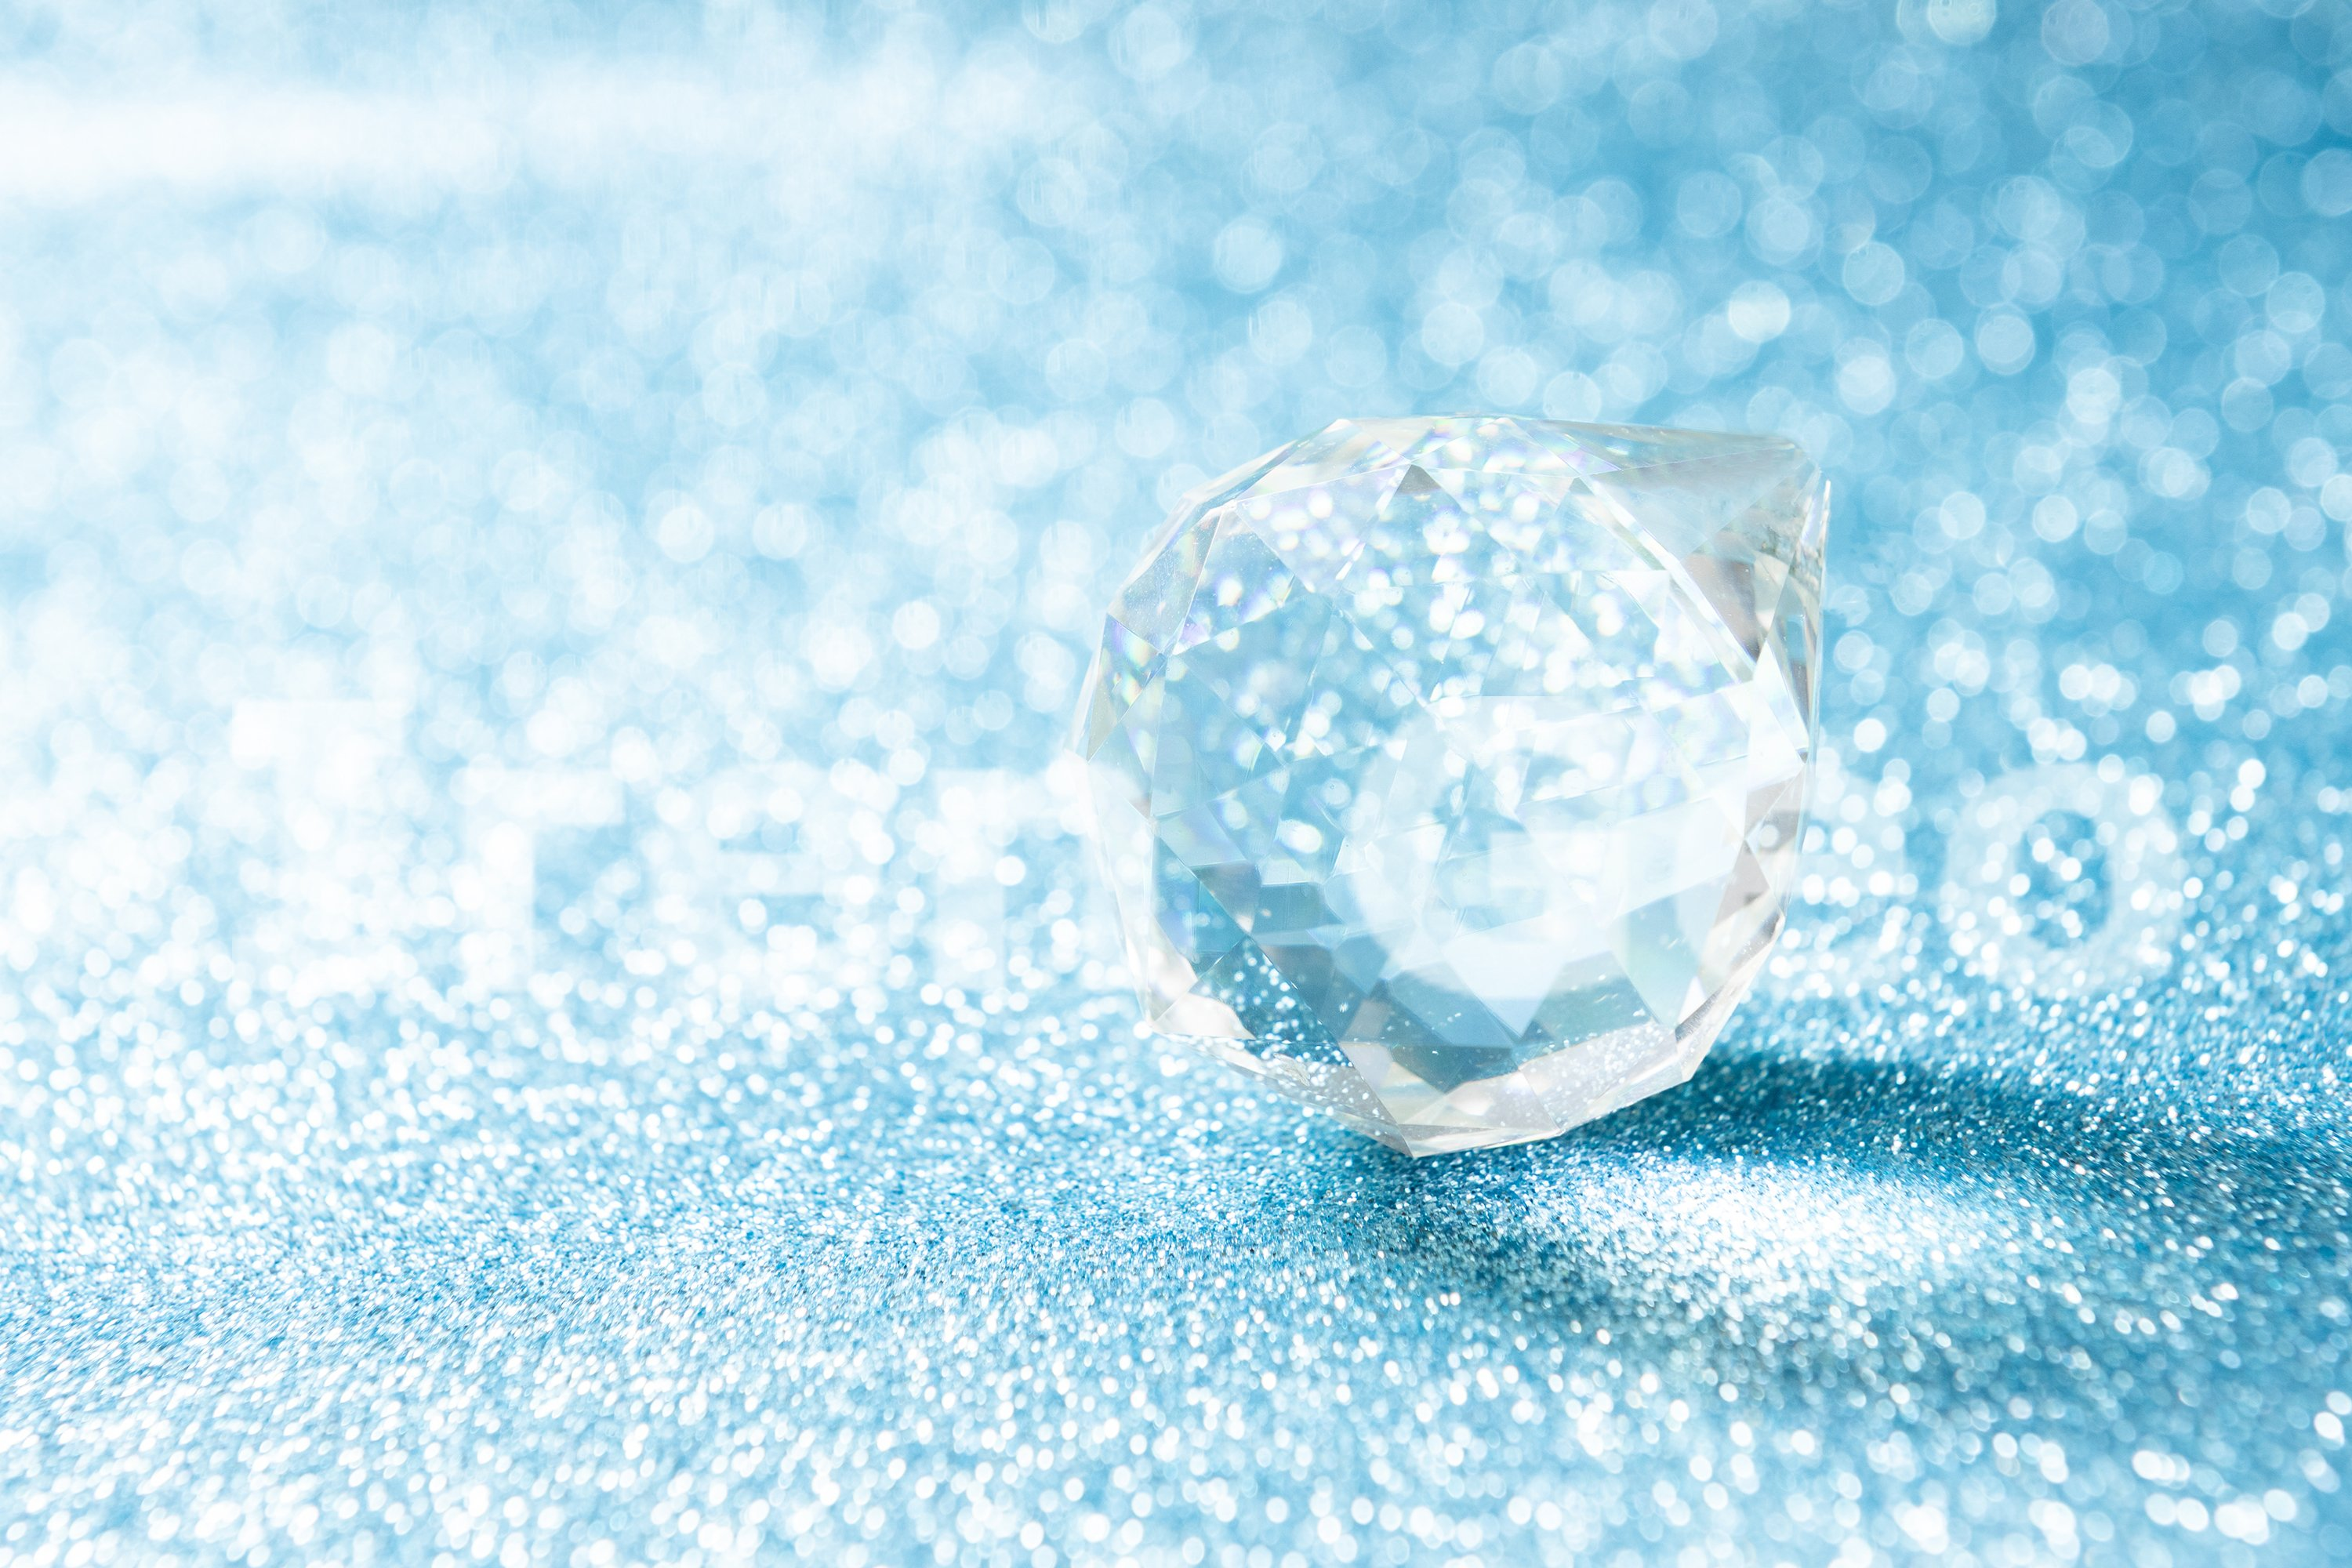 Transparent crystal in the shape of a ball on a bright blue example image 1